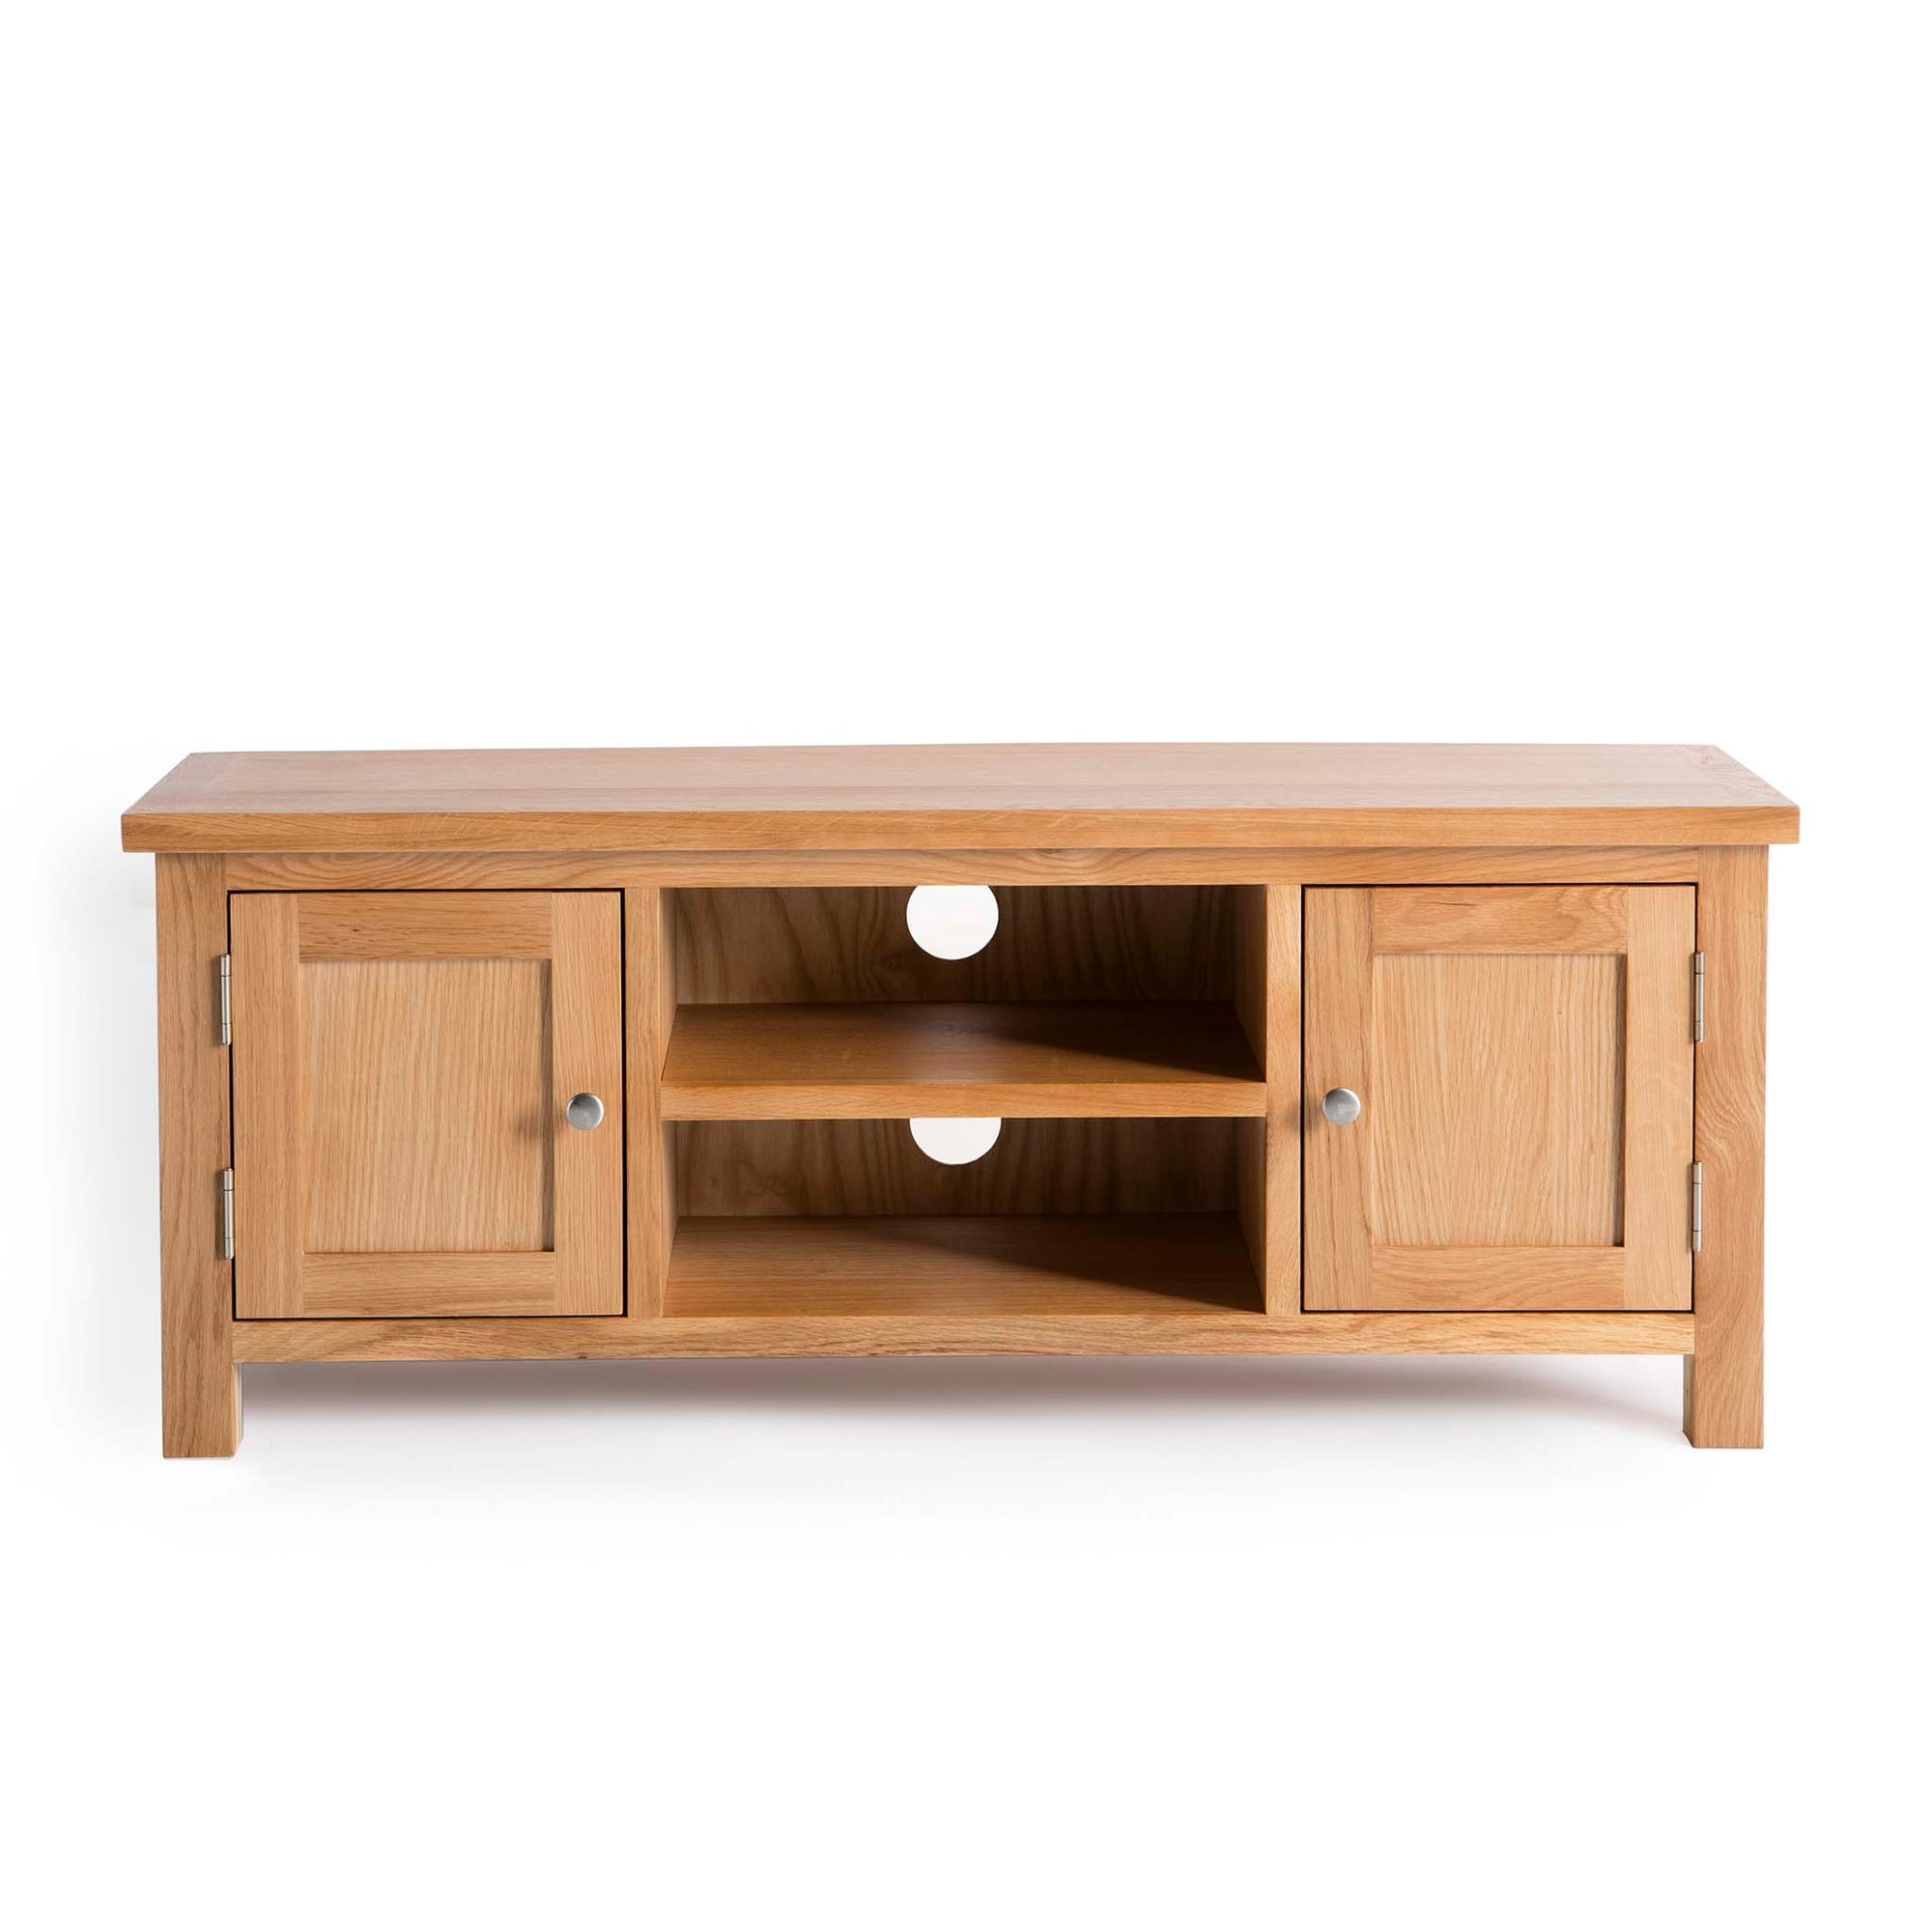 London Oak 120cm TV Stand by Roseland Furniture